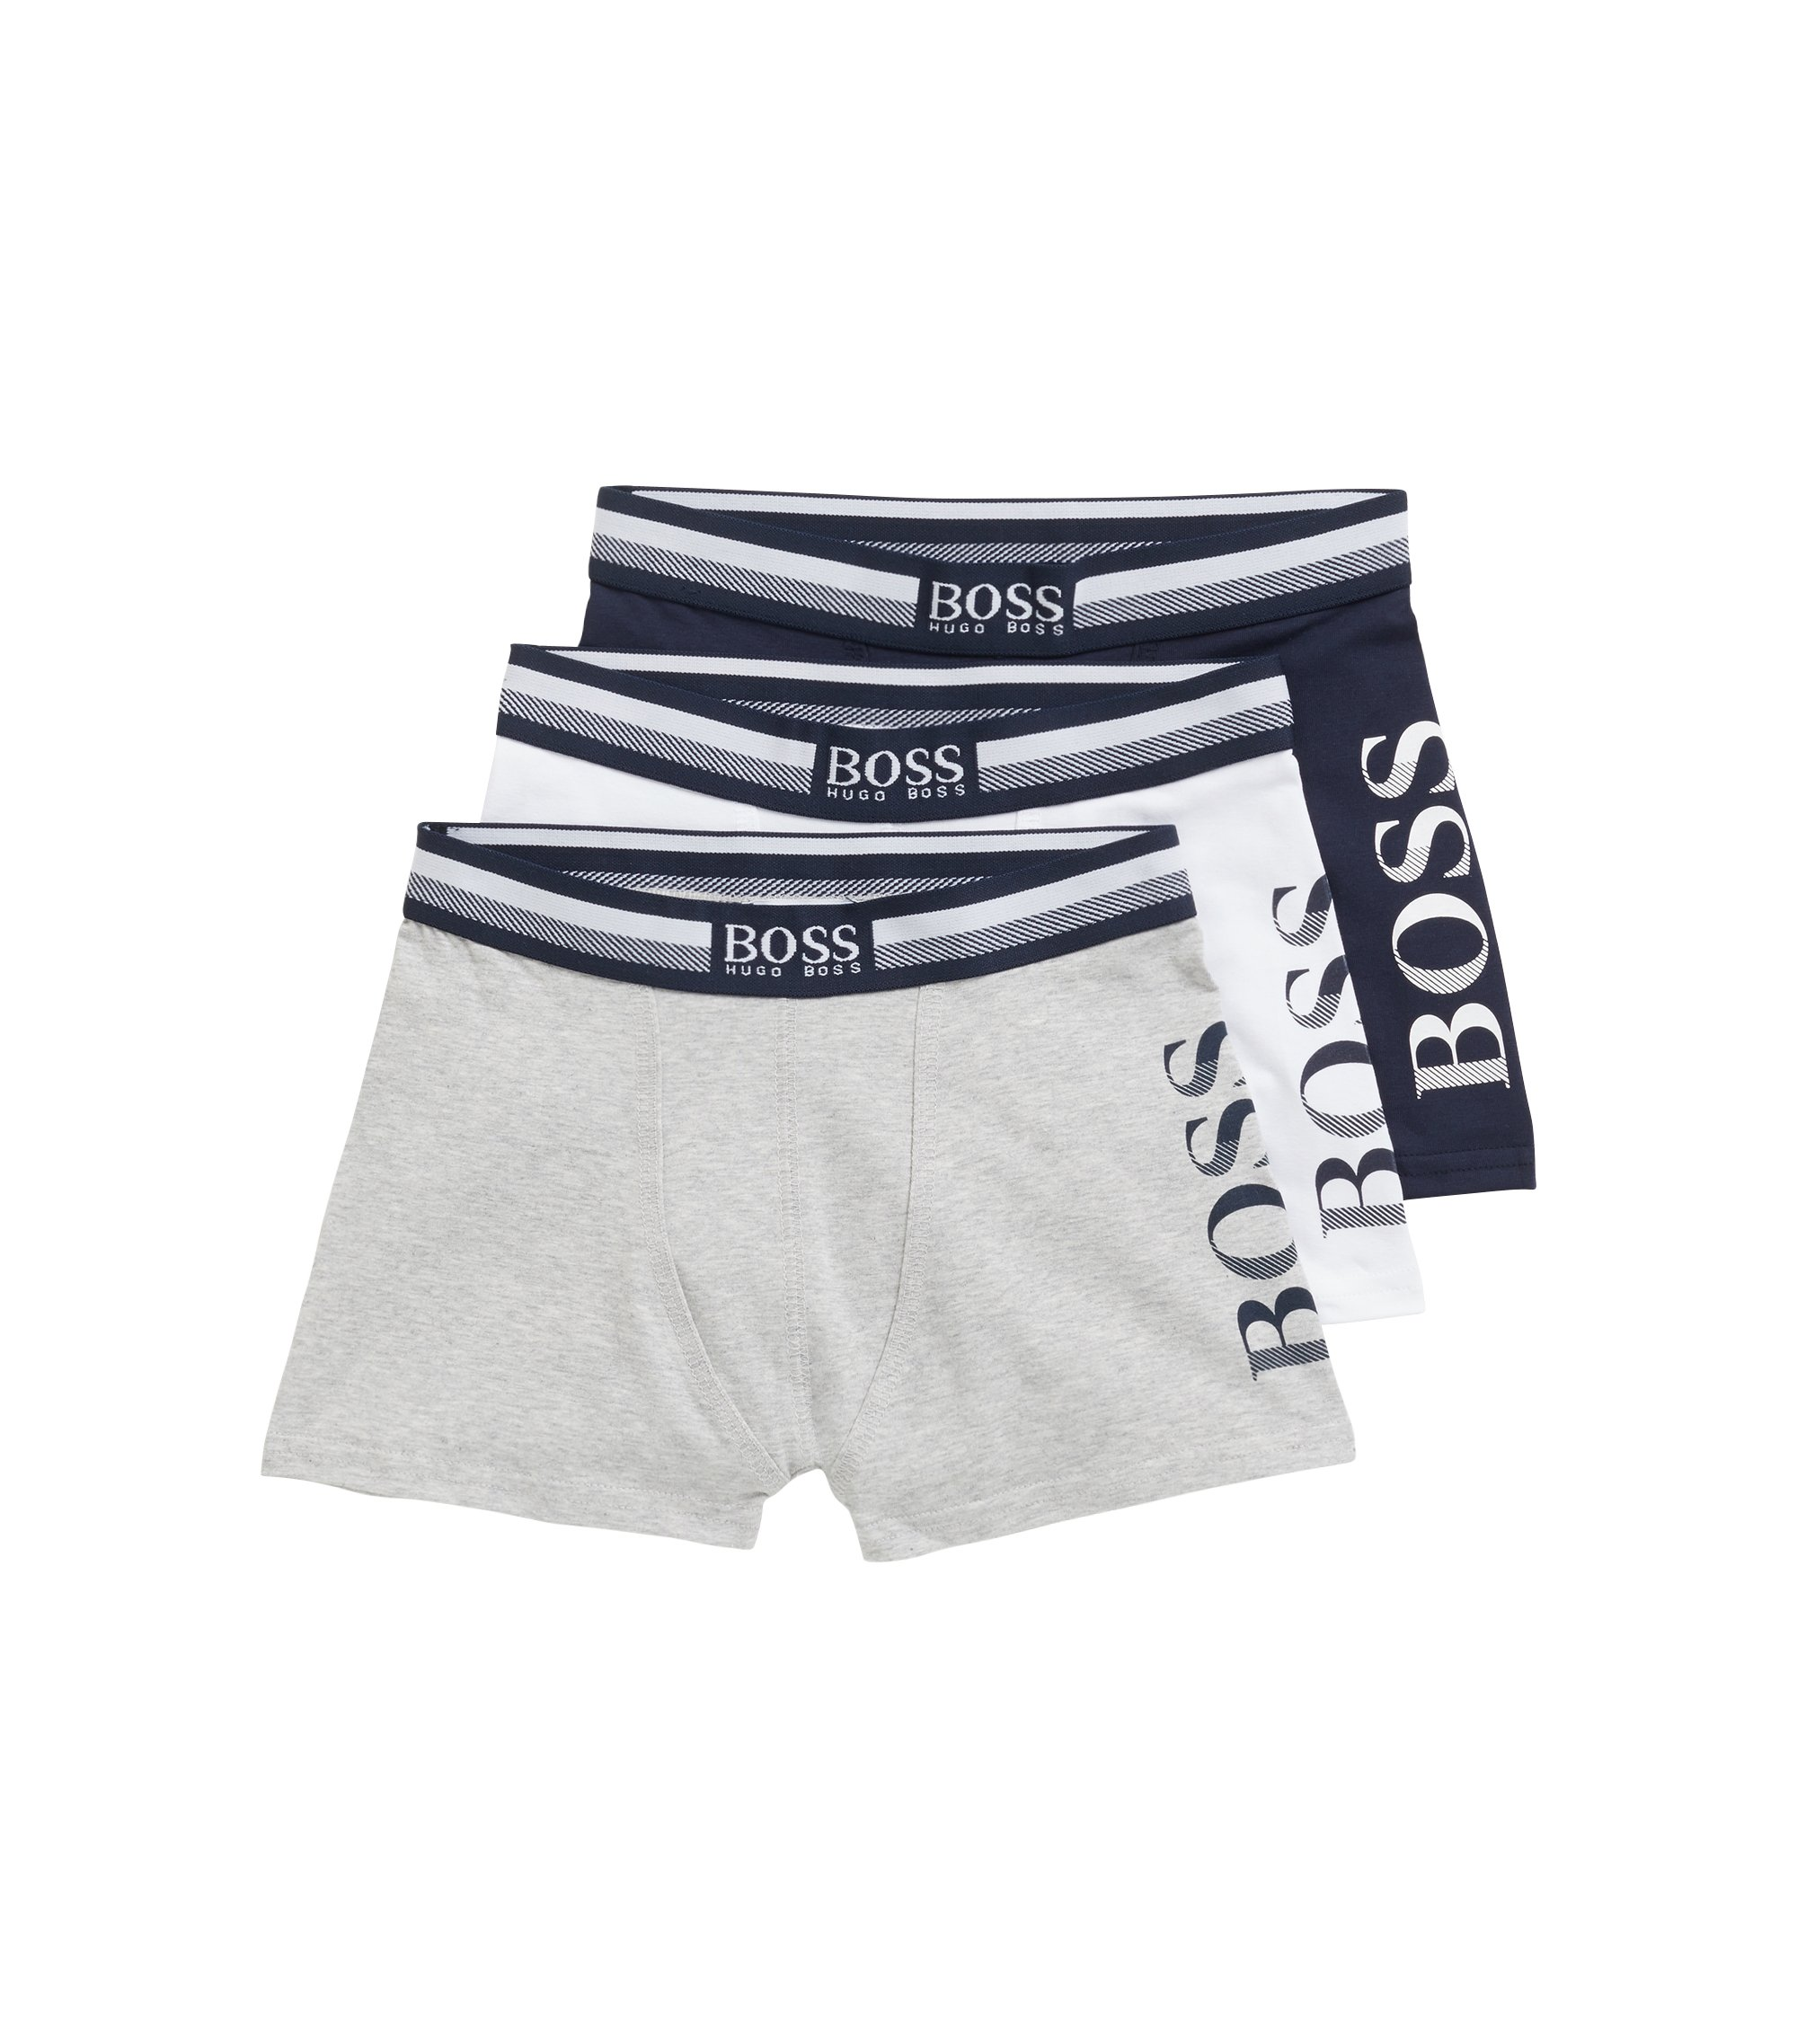 Kids' three-pack of boxer briefs with logo waistband, Dark Blue